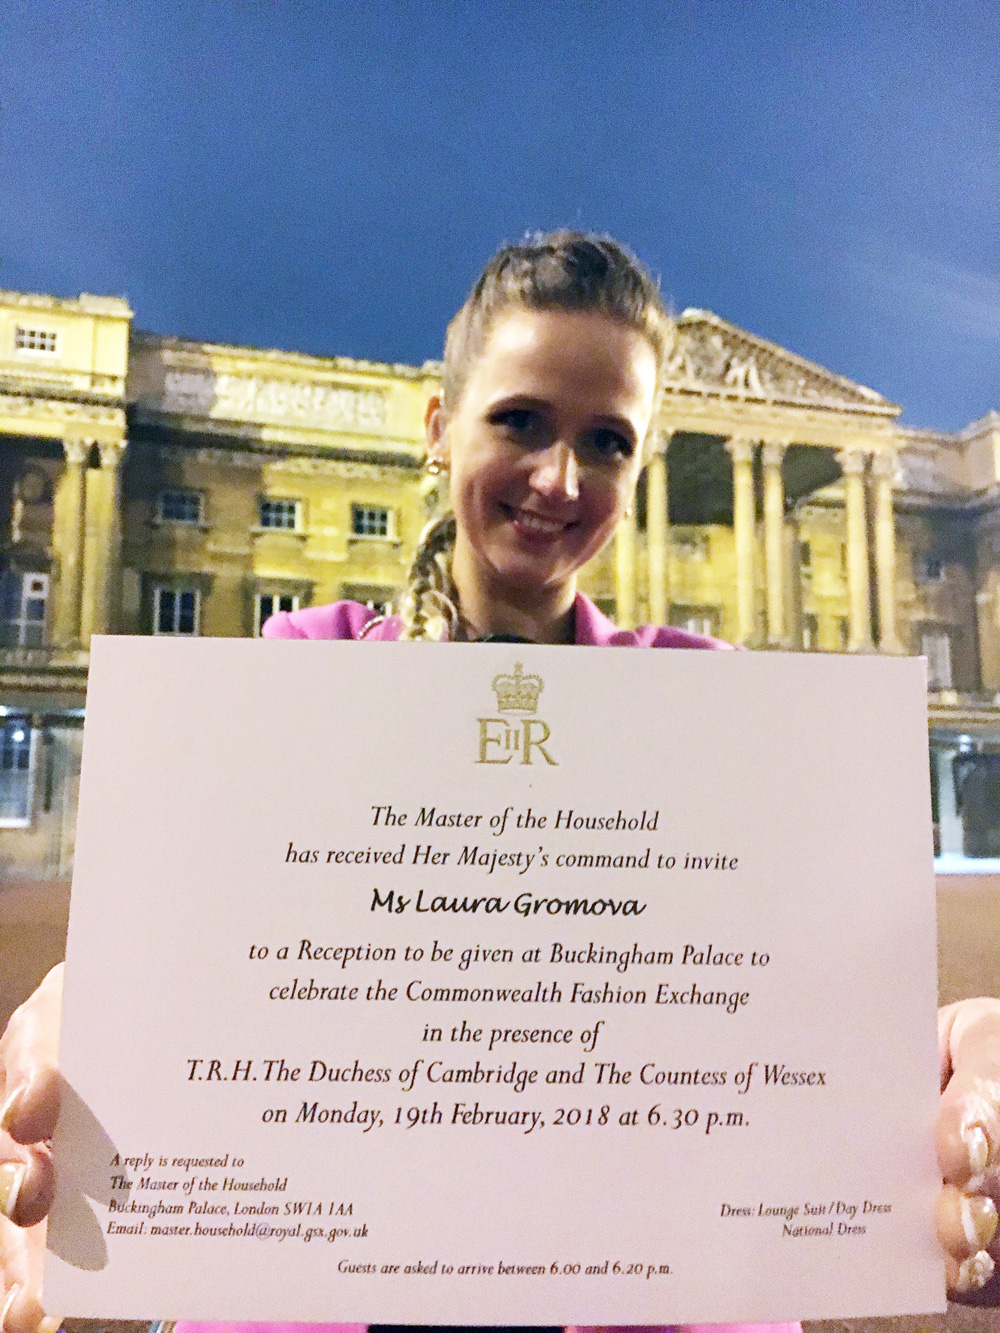 Laura and Her Majesty's invitation at the Buckingham Palace.